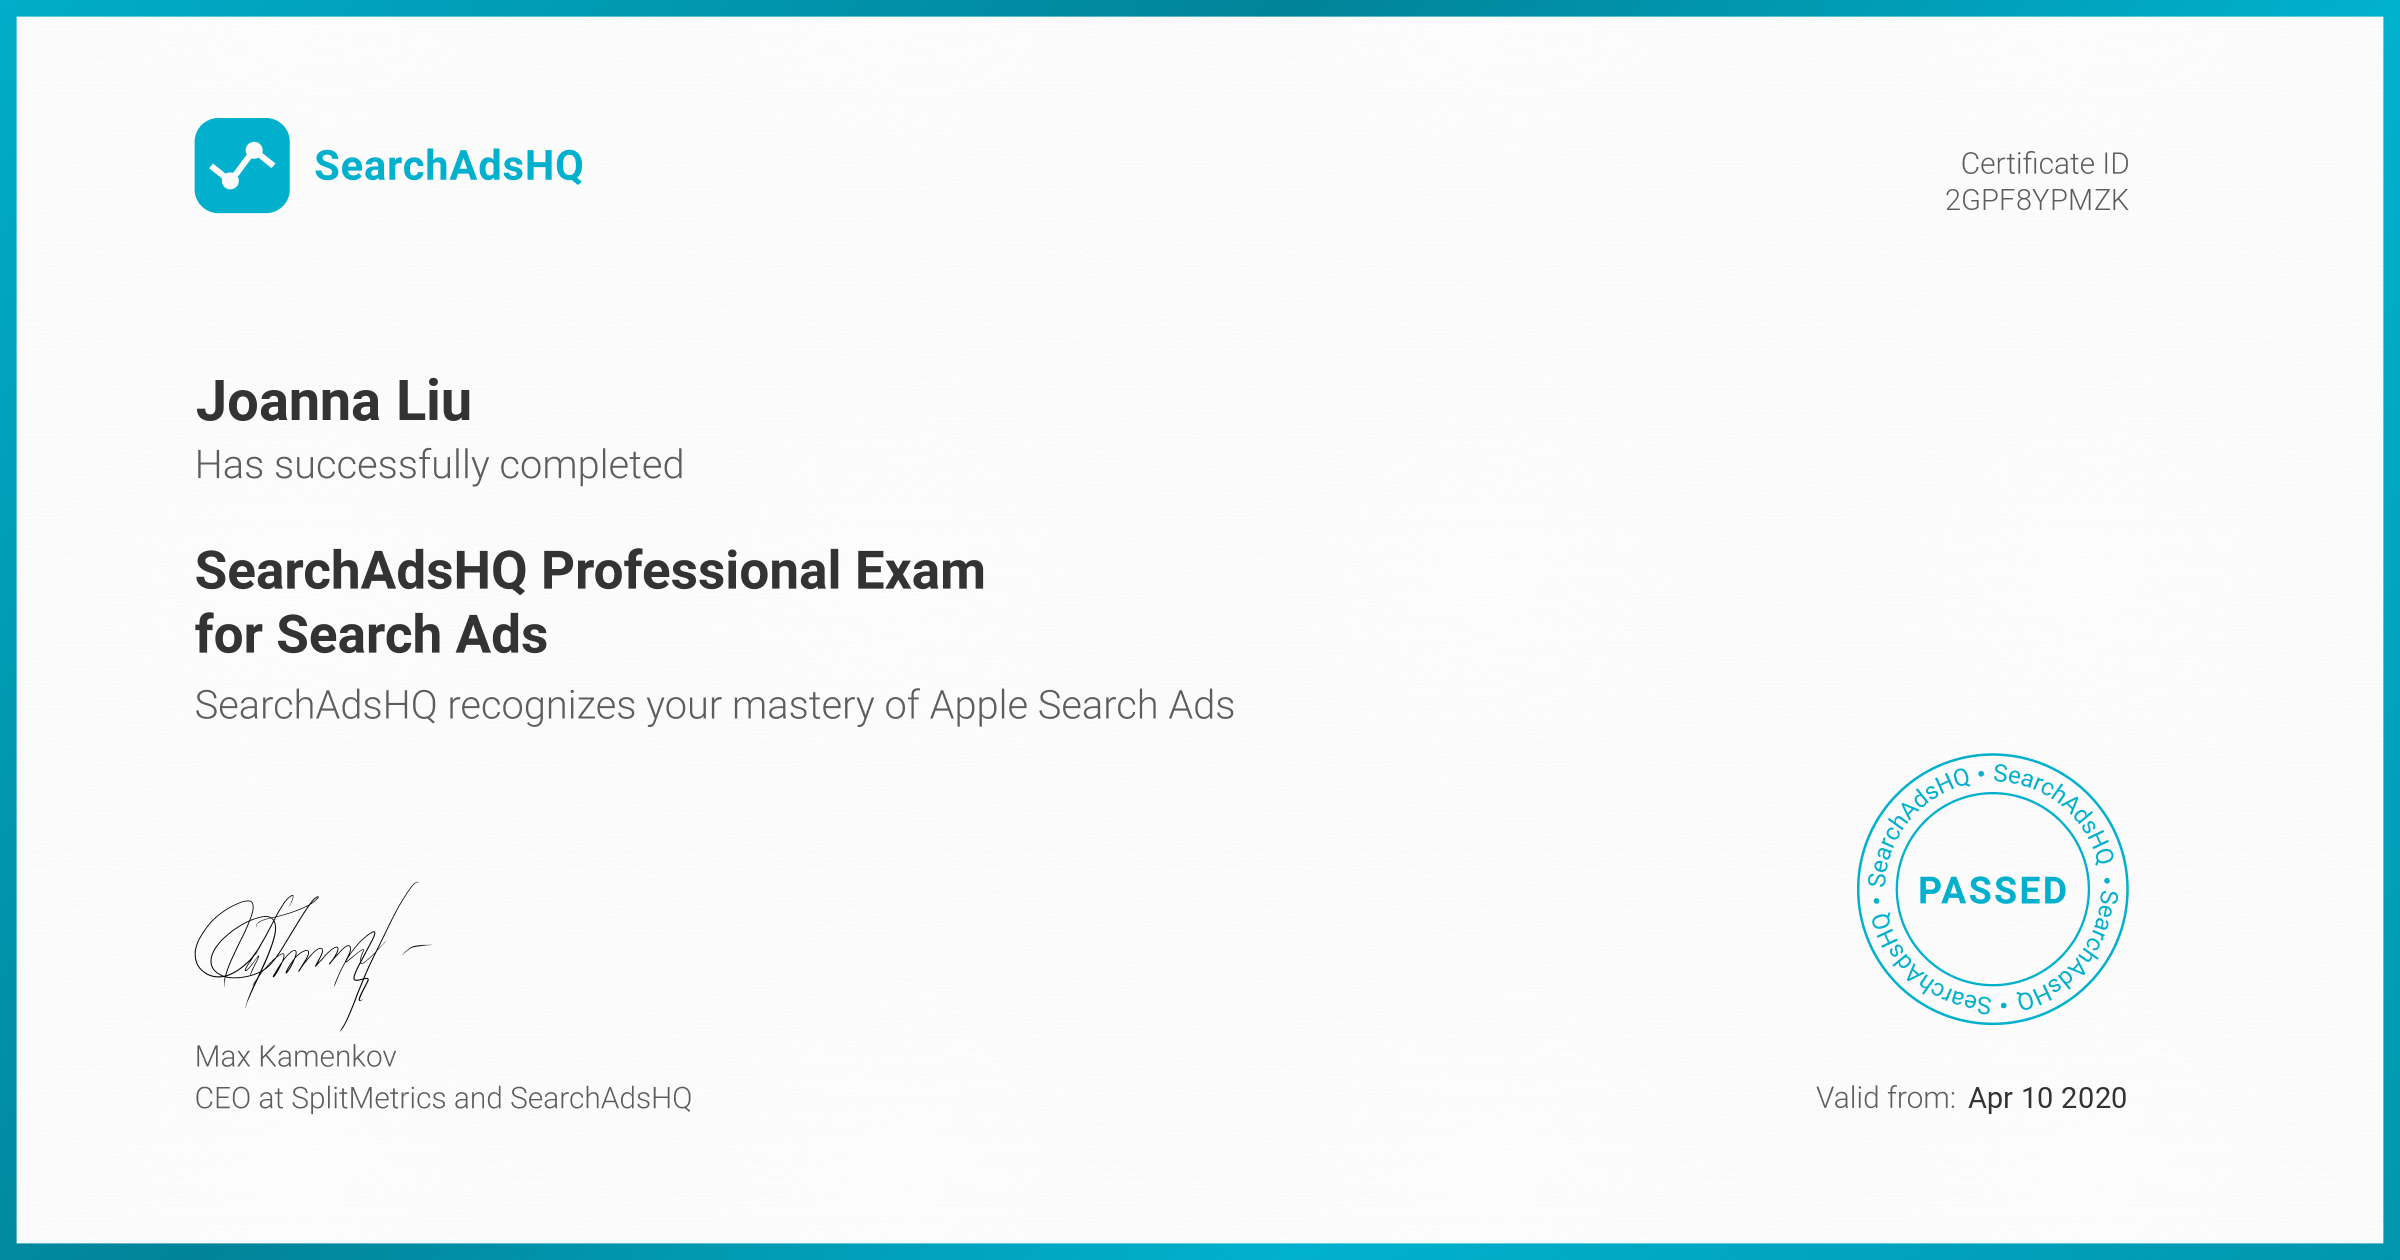 Certificate for Joanna Liu | SearchAdsHQ Professional Exam for Search Ads